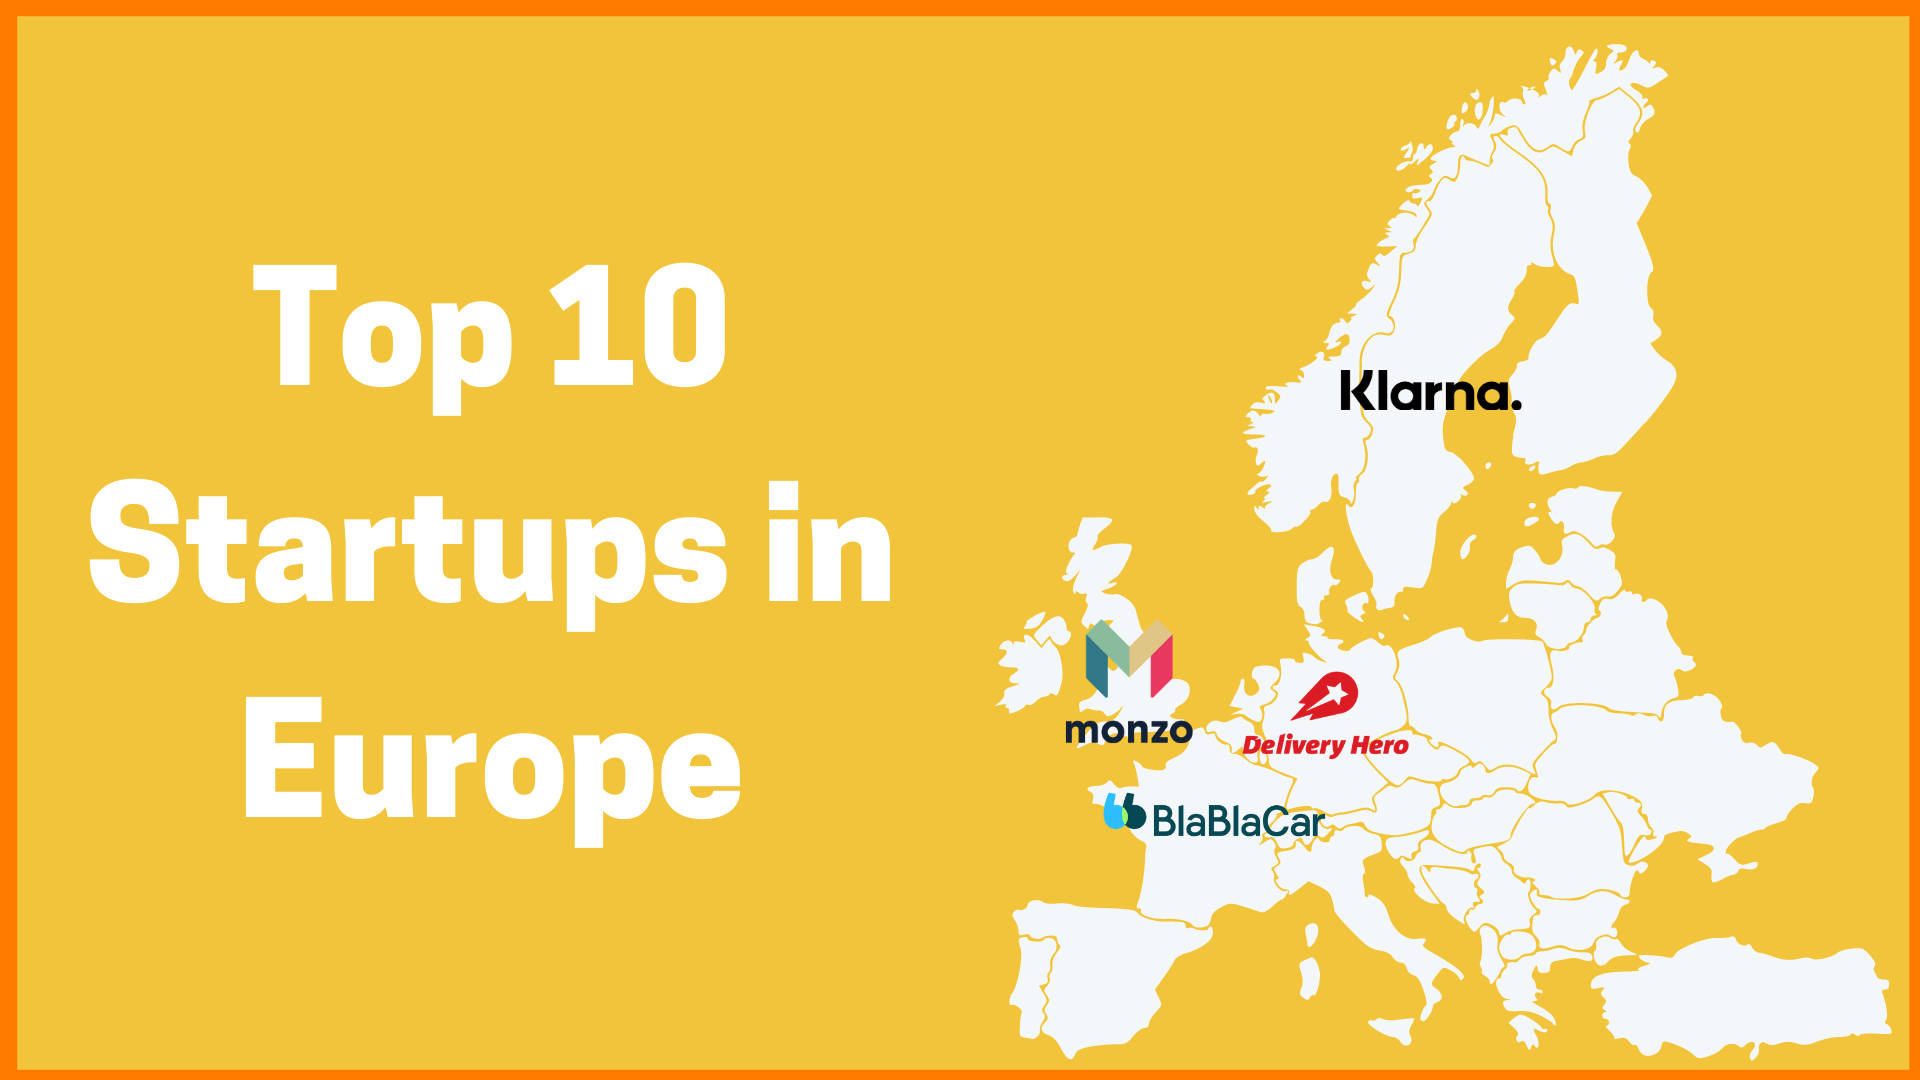 Top 10 Startups in Europe